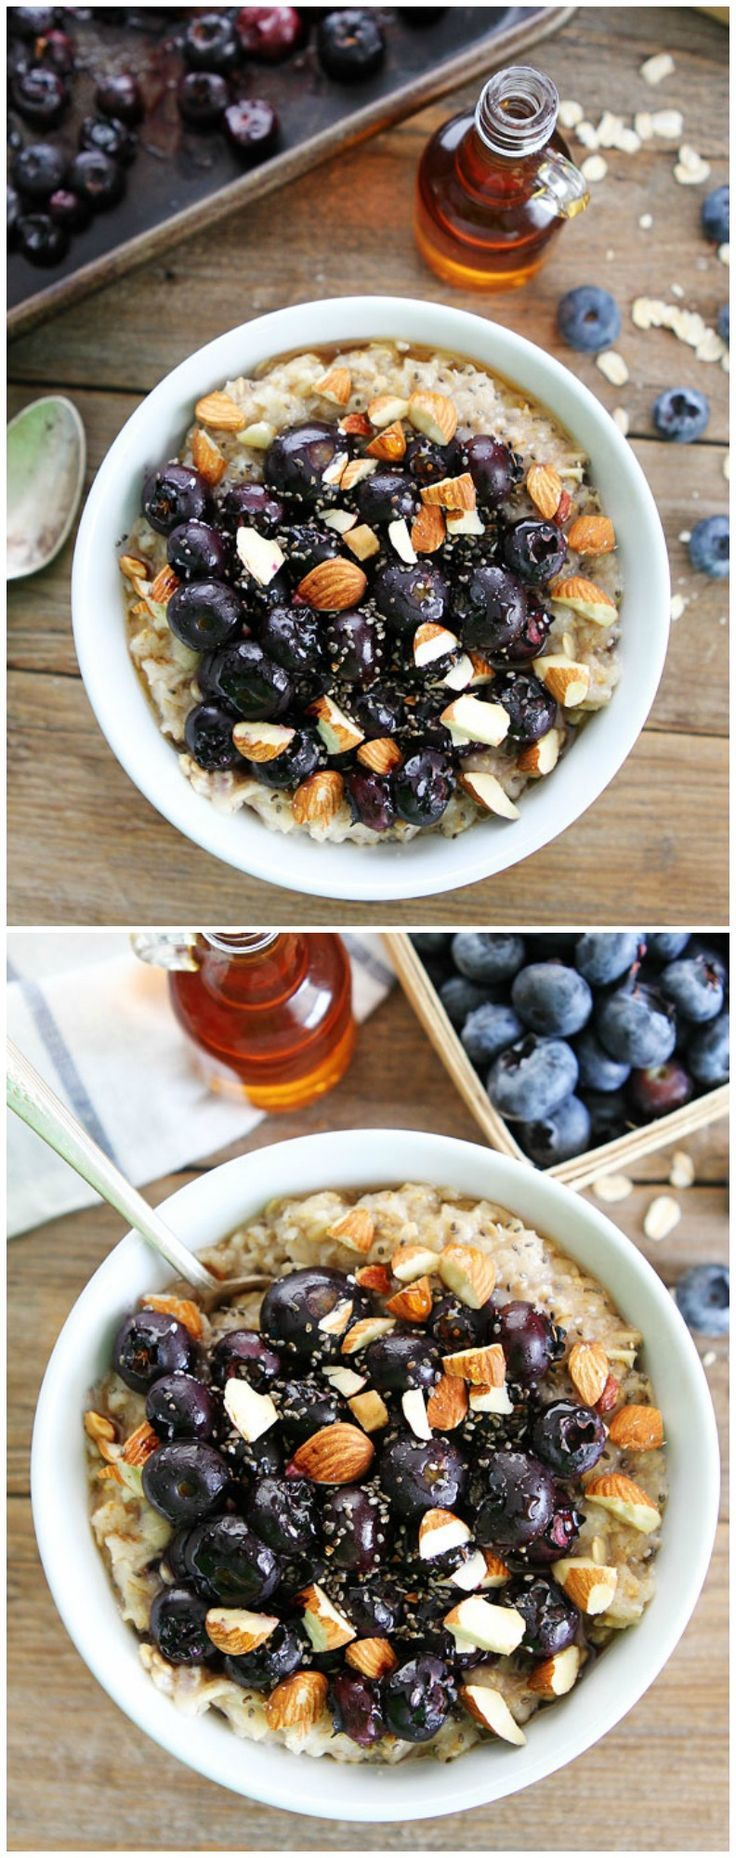 Maple Roasted Blueberry Almond Oatmeal Recipe on twopeasandtheirpod.com This simple and healthy oatmeal is a favorite breakfast at our house!